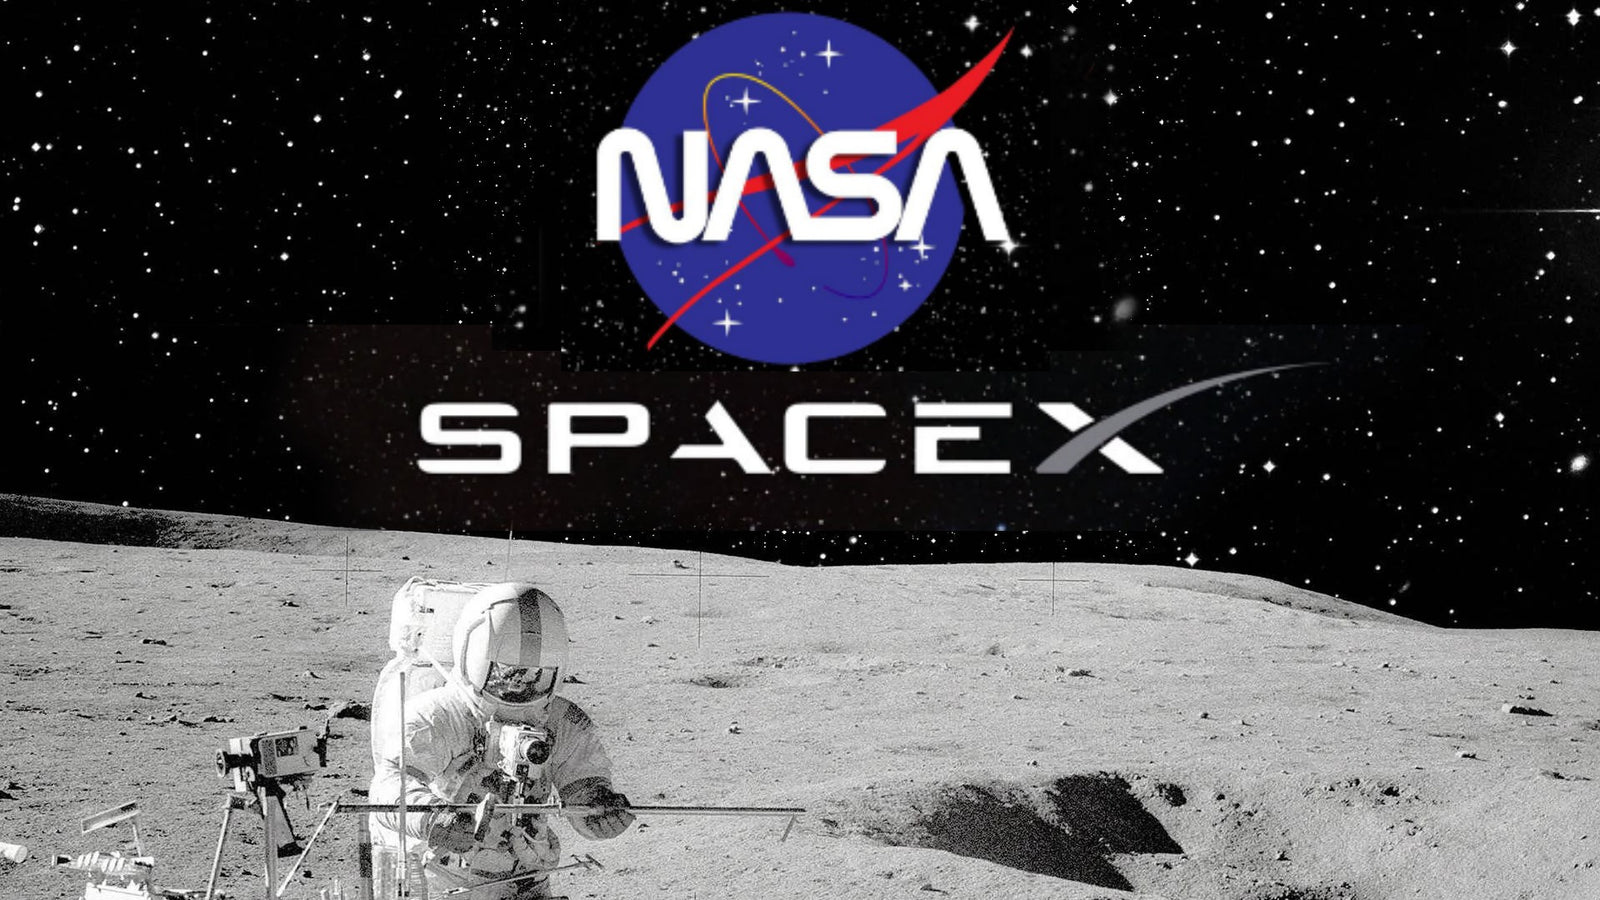 our hipster nasa nad spaceX combined